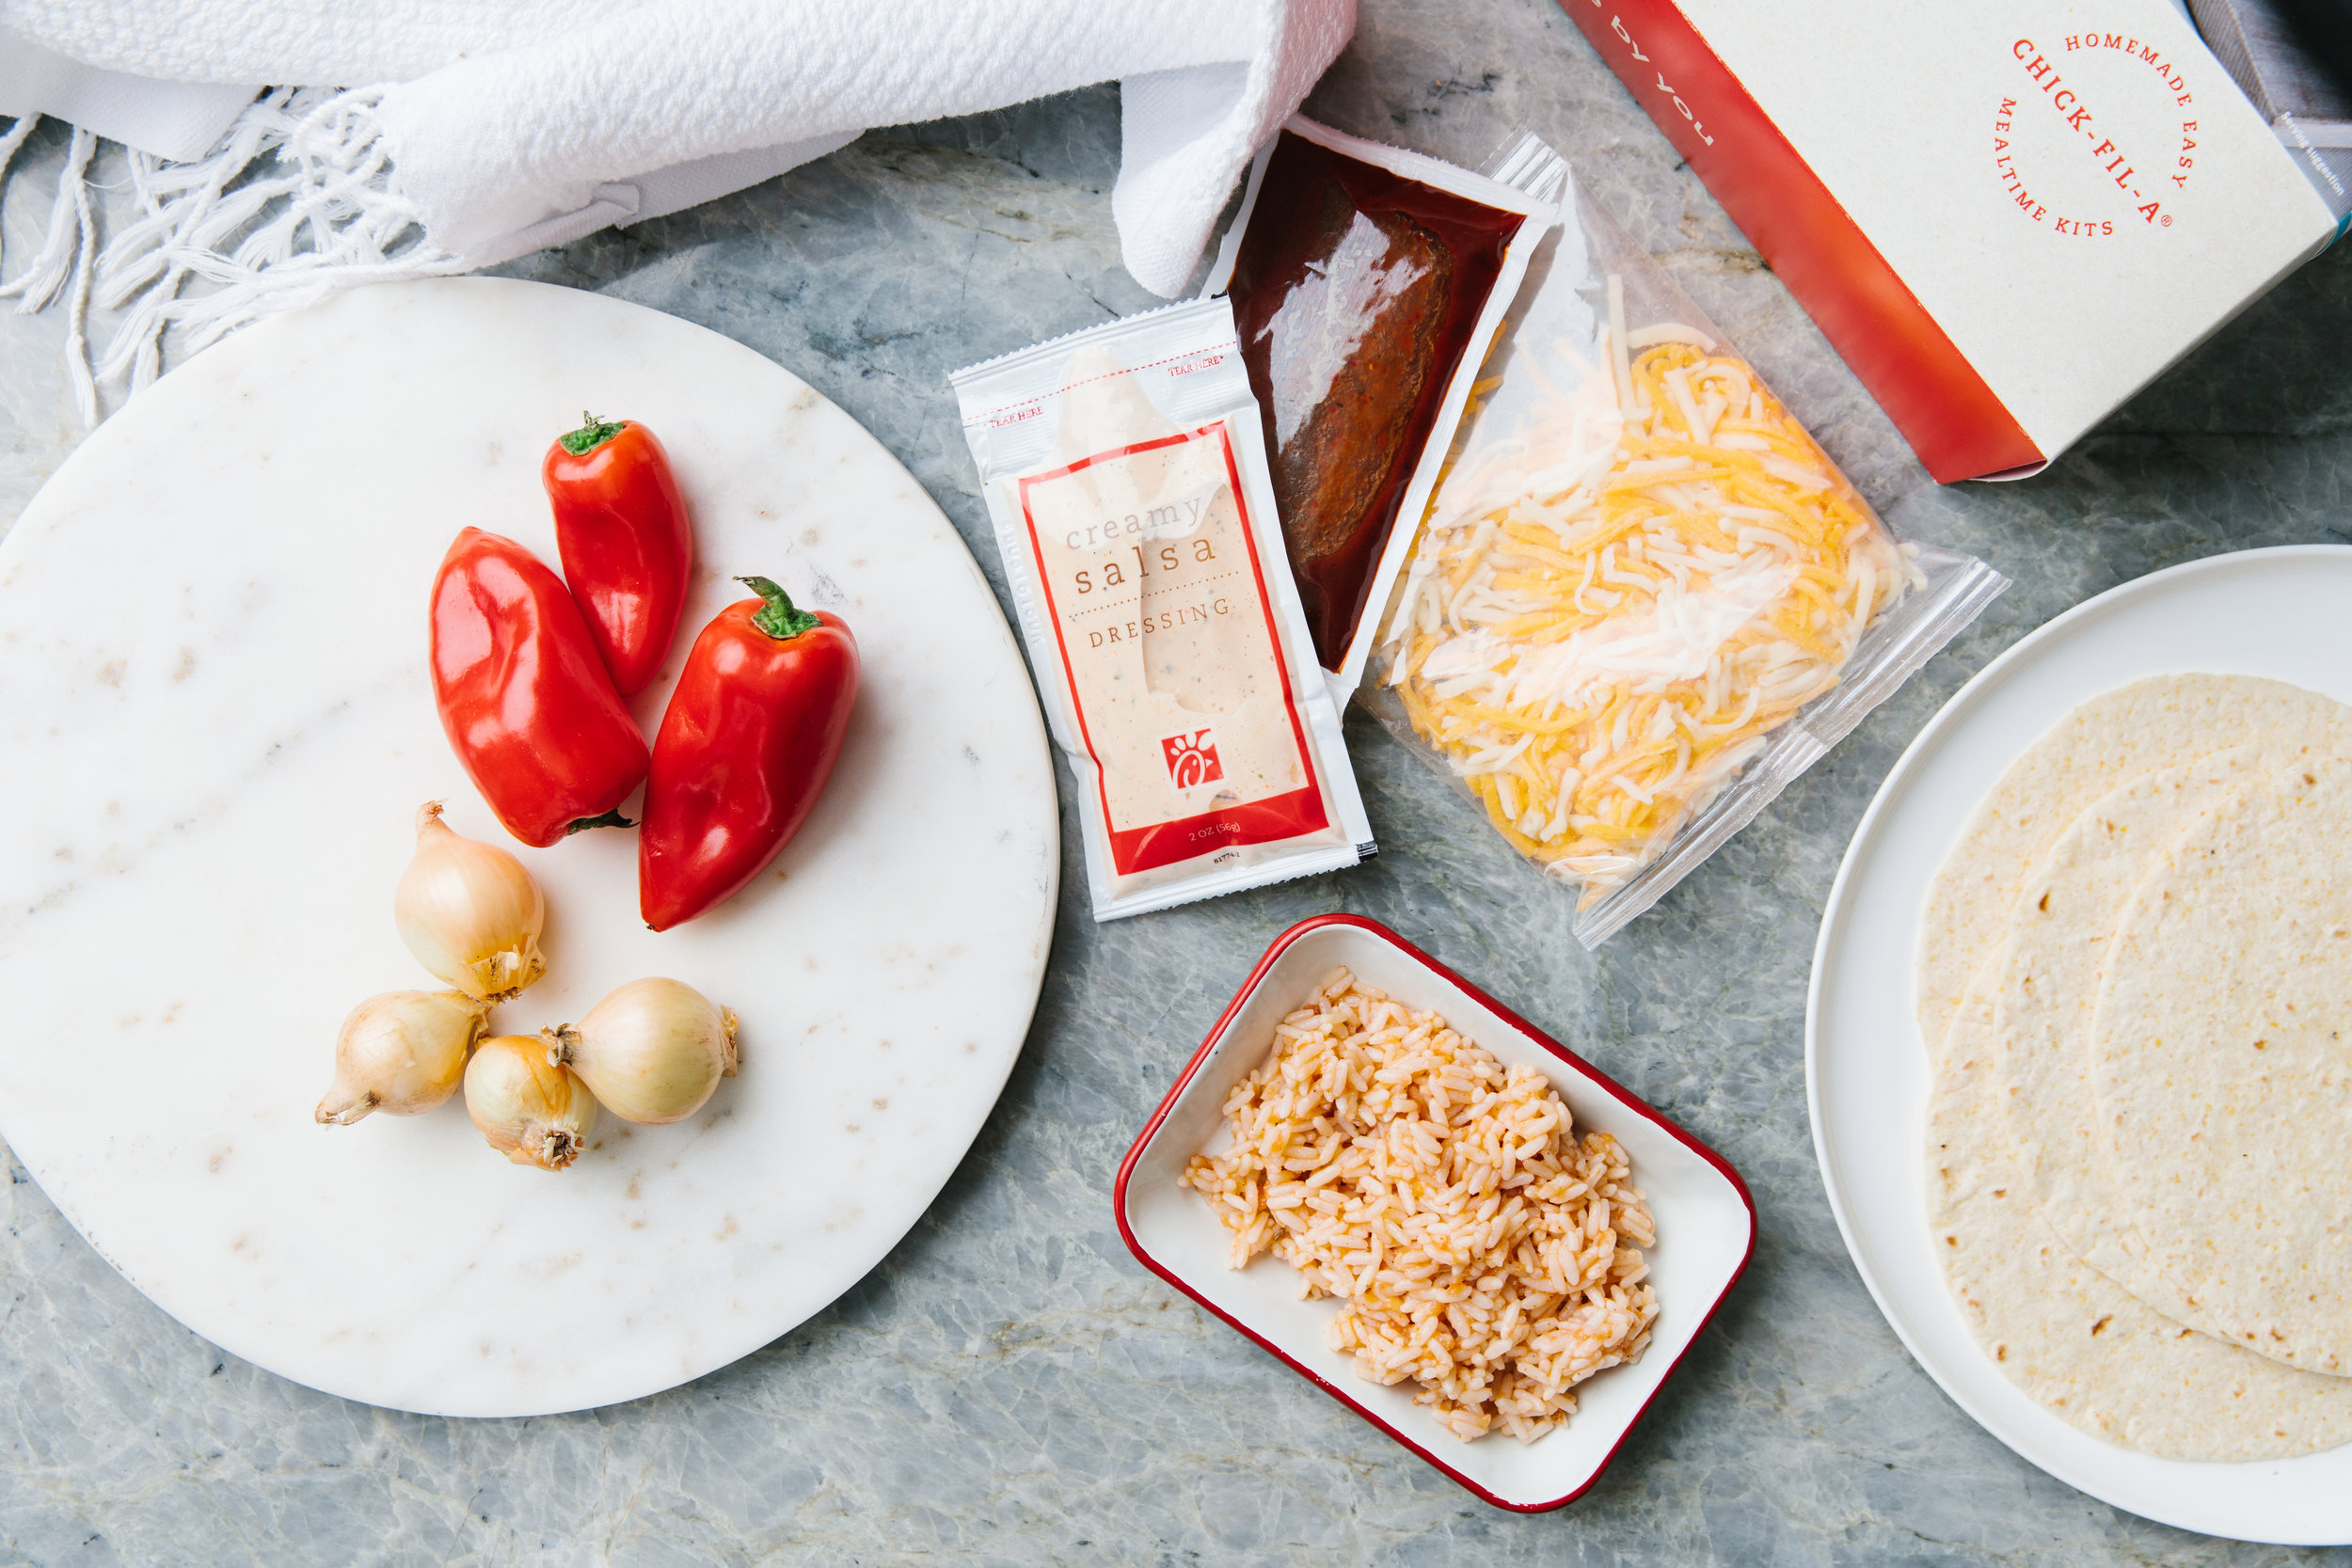 Chick-fil-A Mealtime Kits - =Social Media